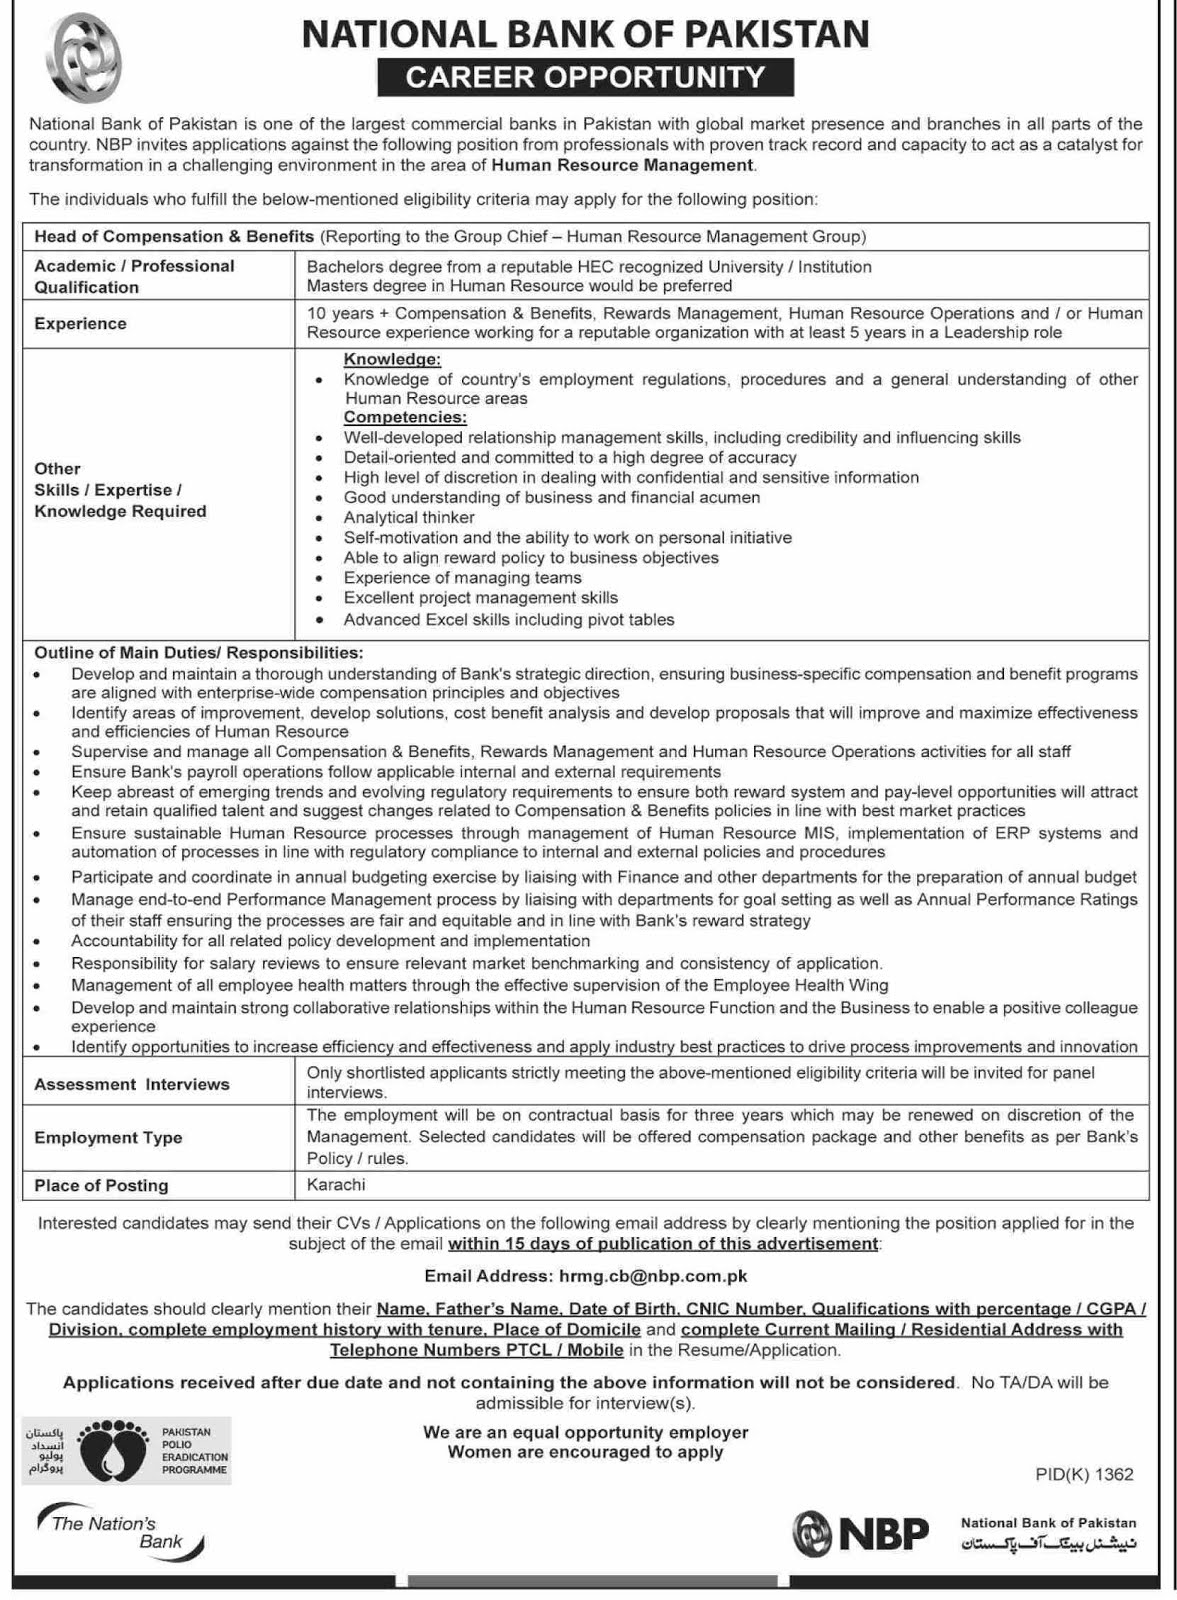 NBP Careers Opportunities 2019 October Advertisement